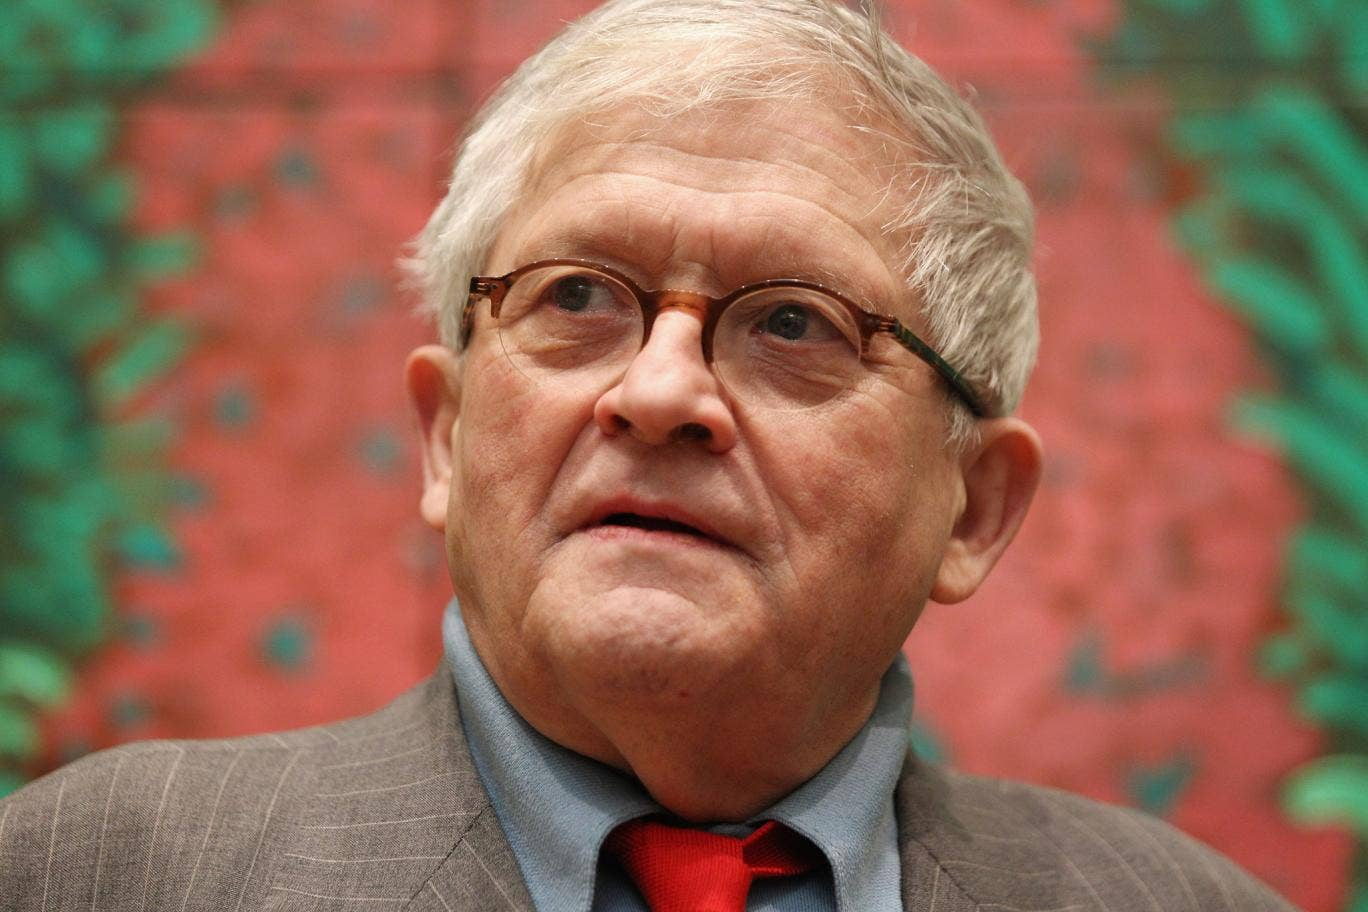 David Hockney has not responded to requests from Bridlington Town Council to grant him Freedom of the City